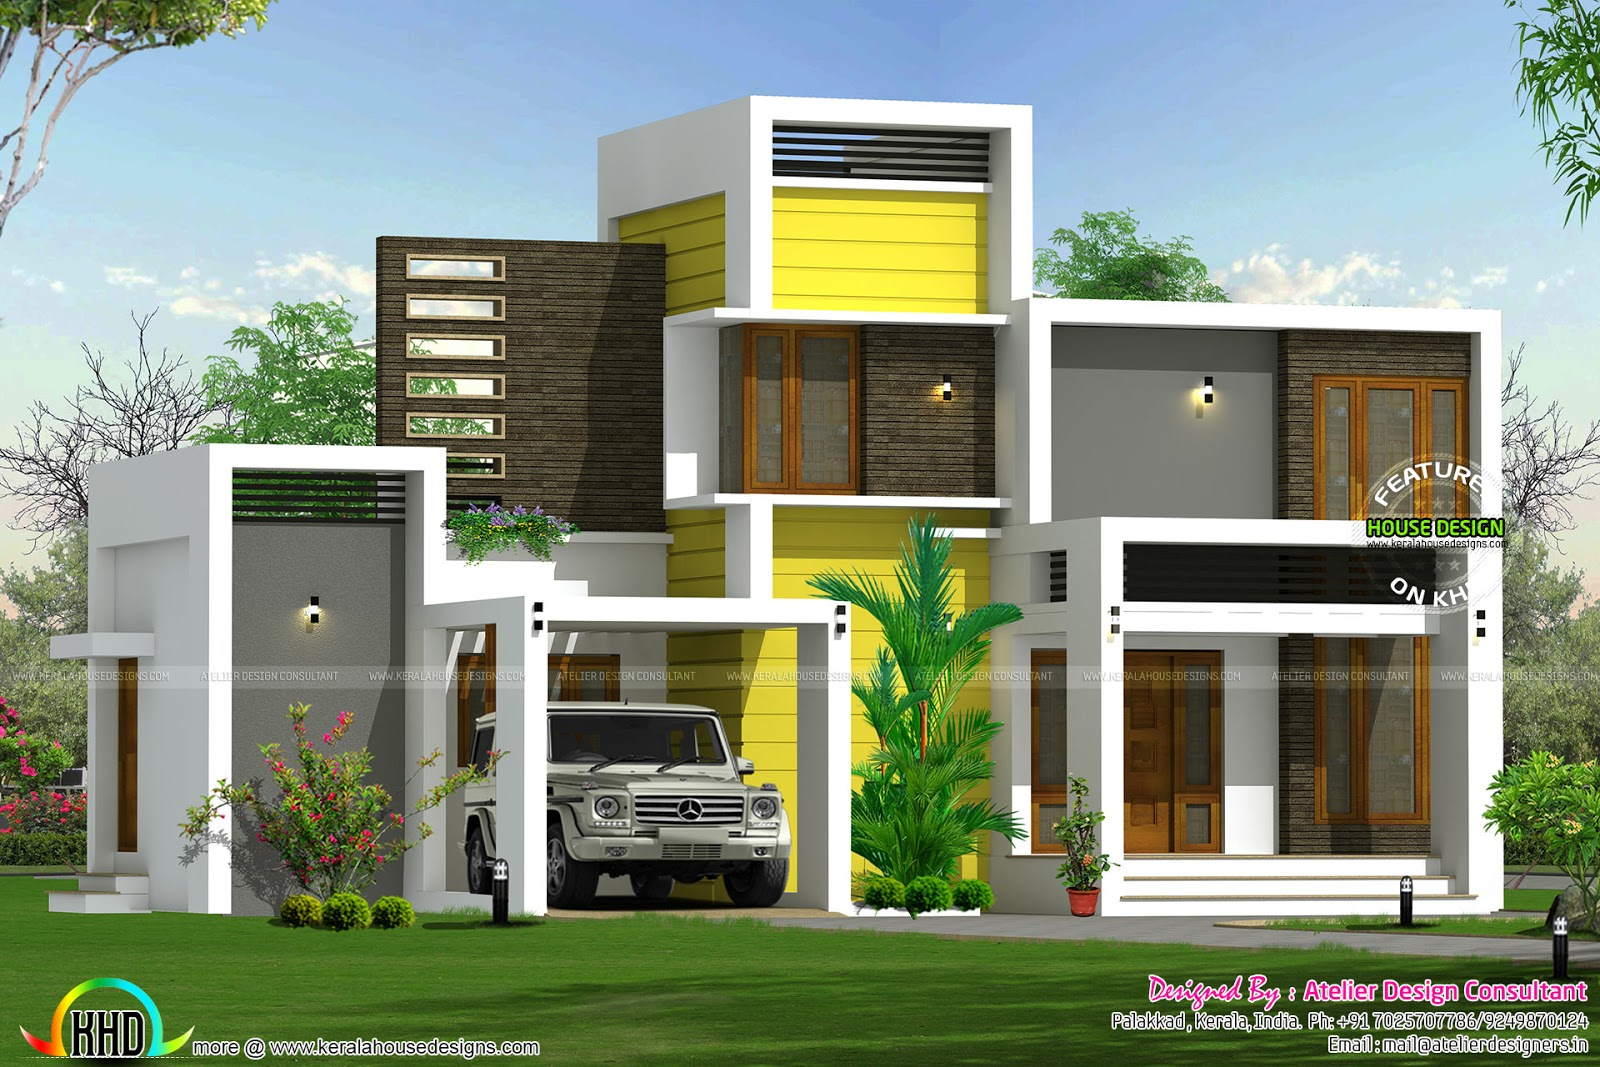 16 lakhs house plan architecture kerala home design and floor plans